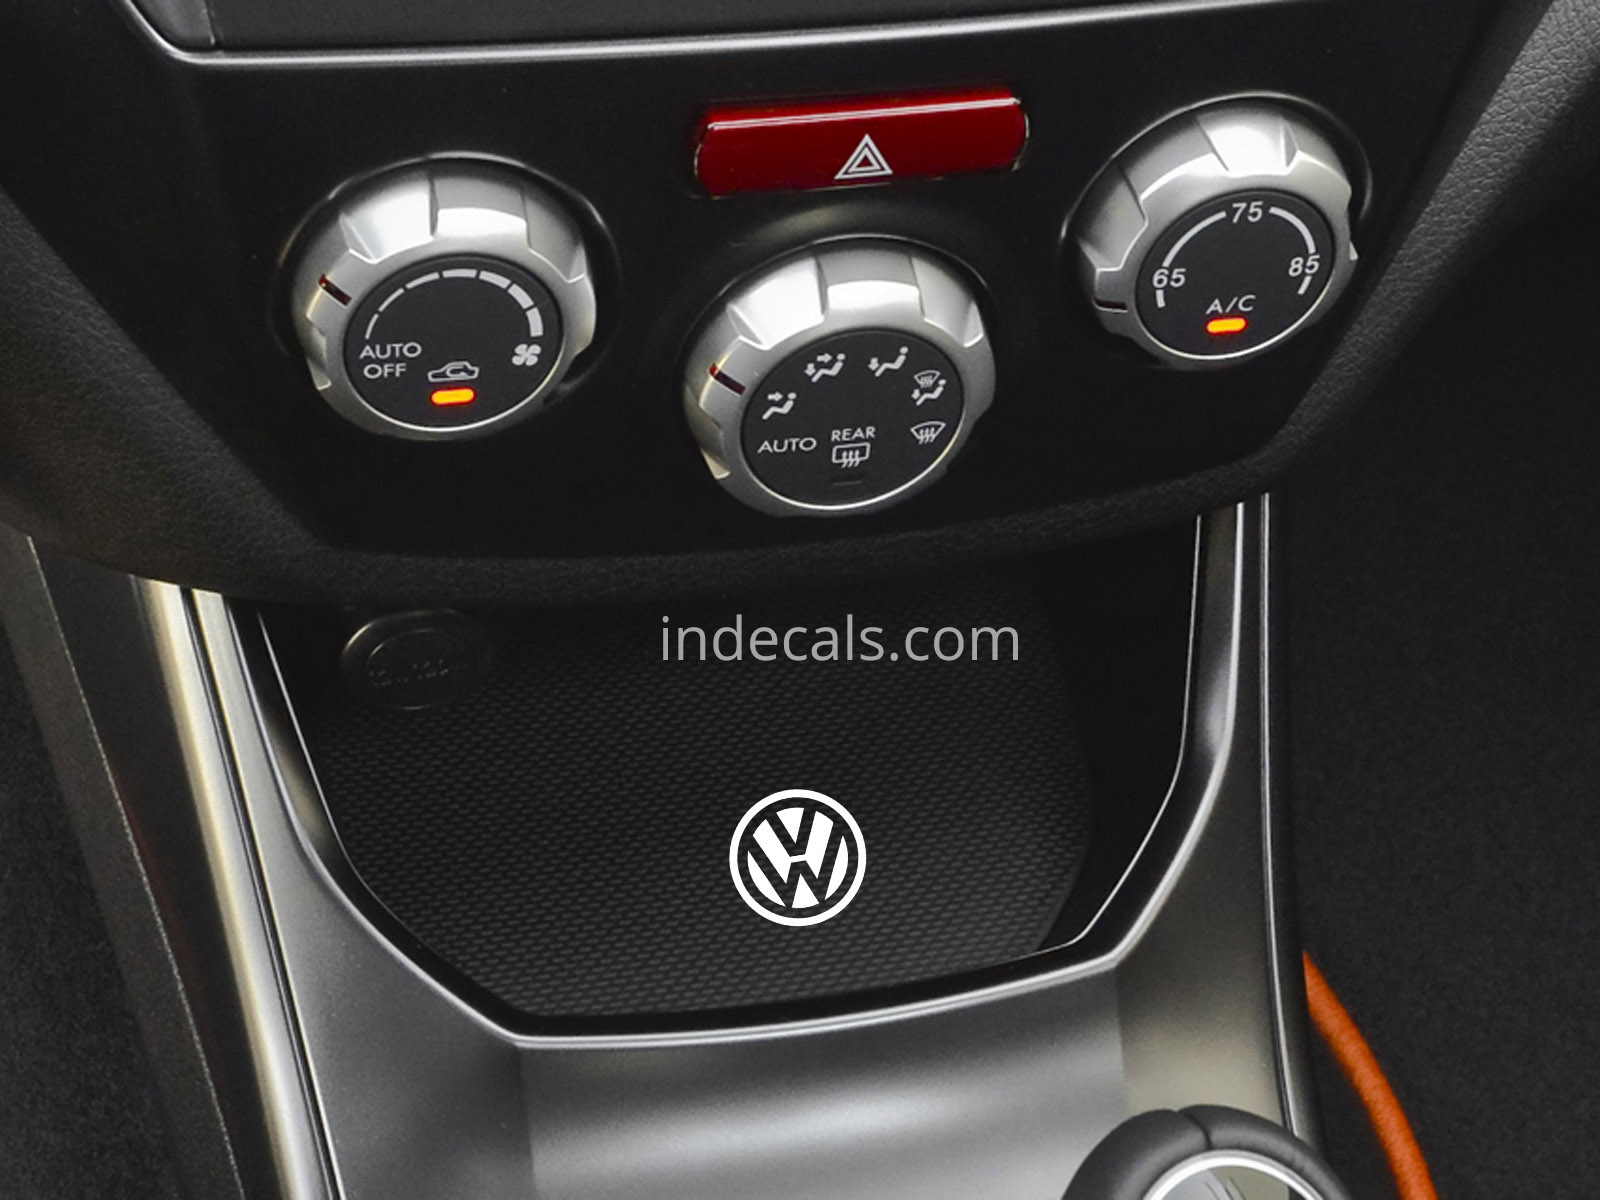 3 x Volkswagen Stickers for Ashtray - White